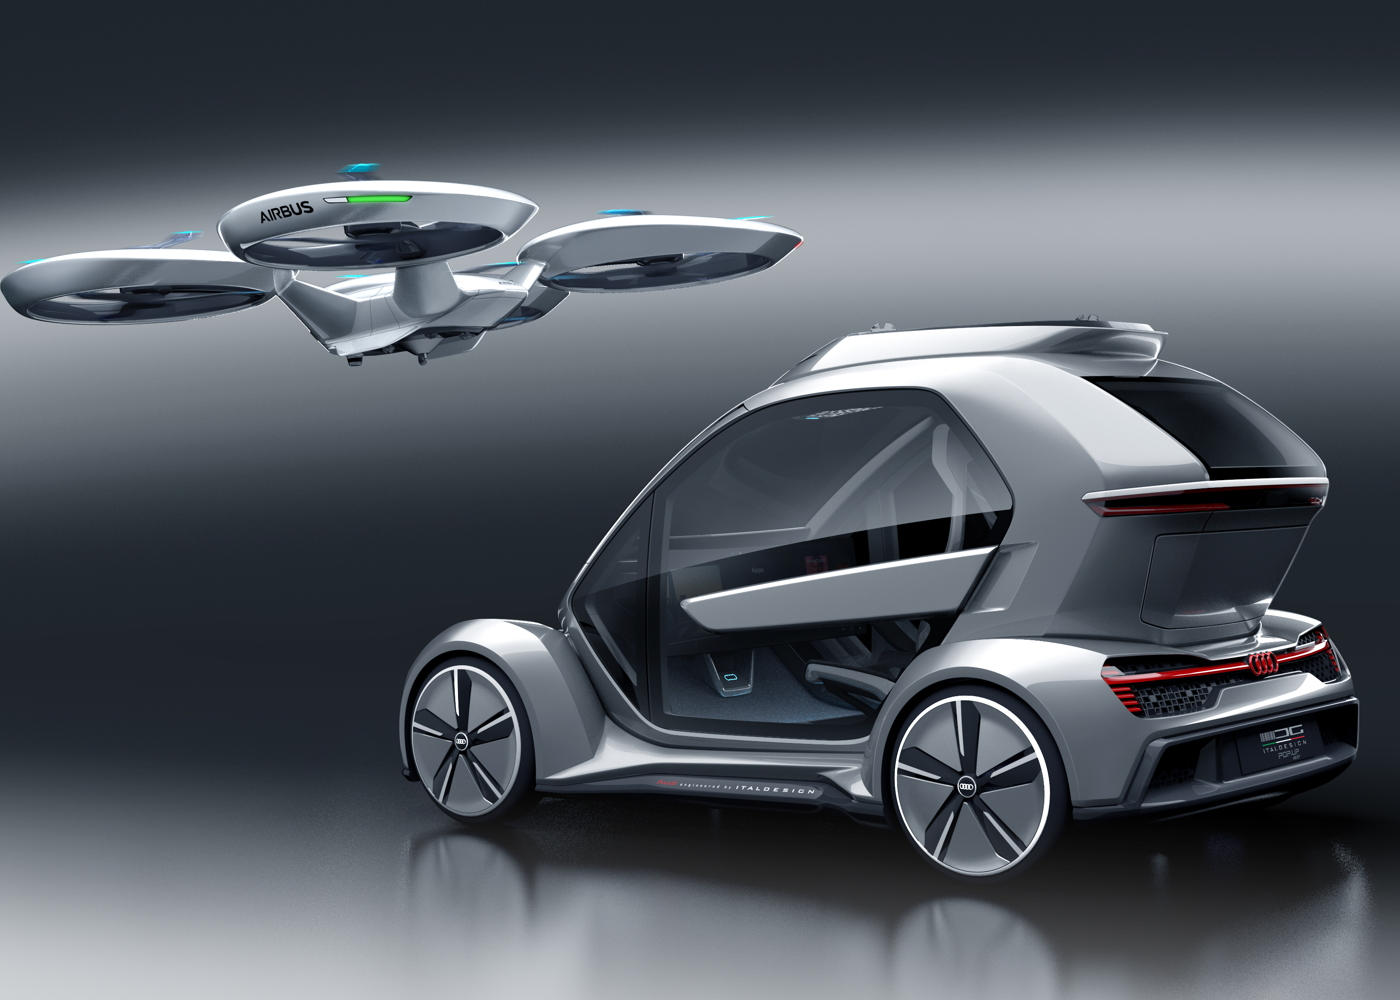 Airbus, Audi and Italdesign Pop.Up Next